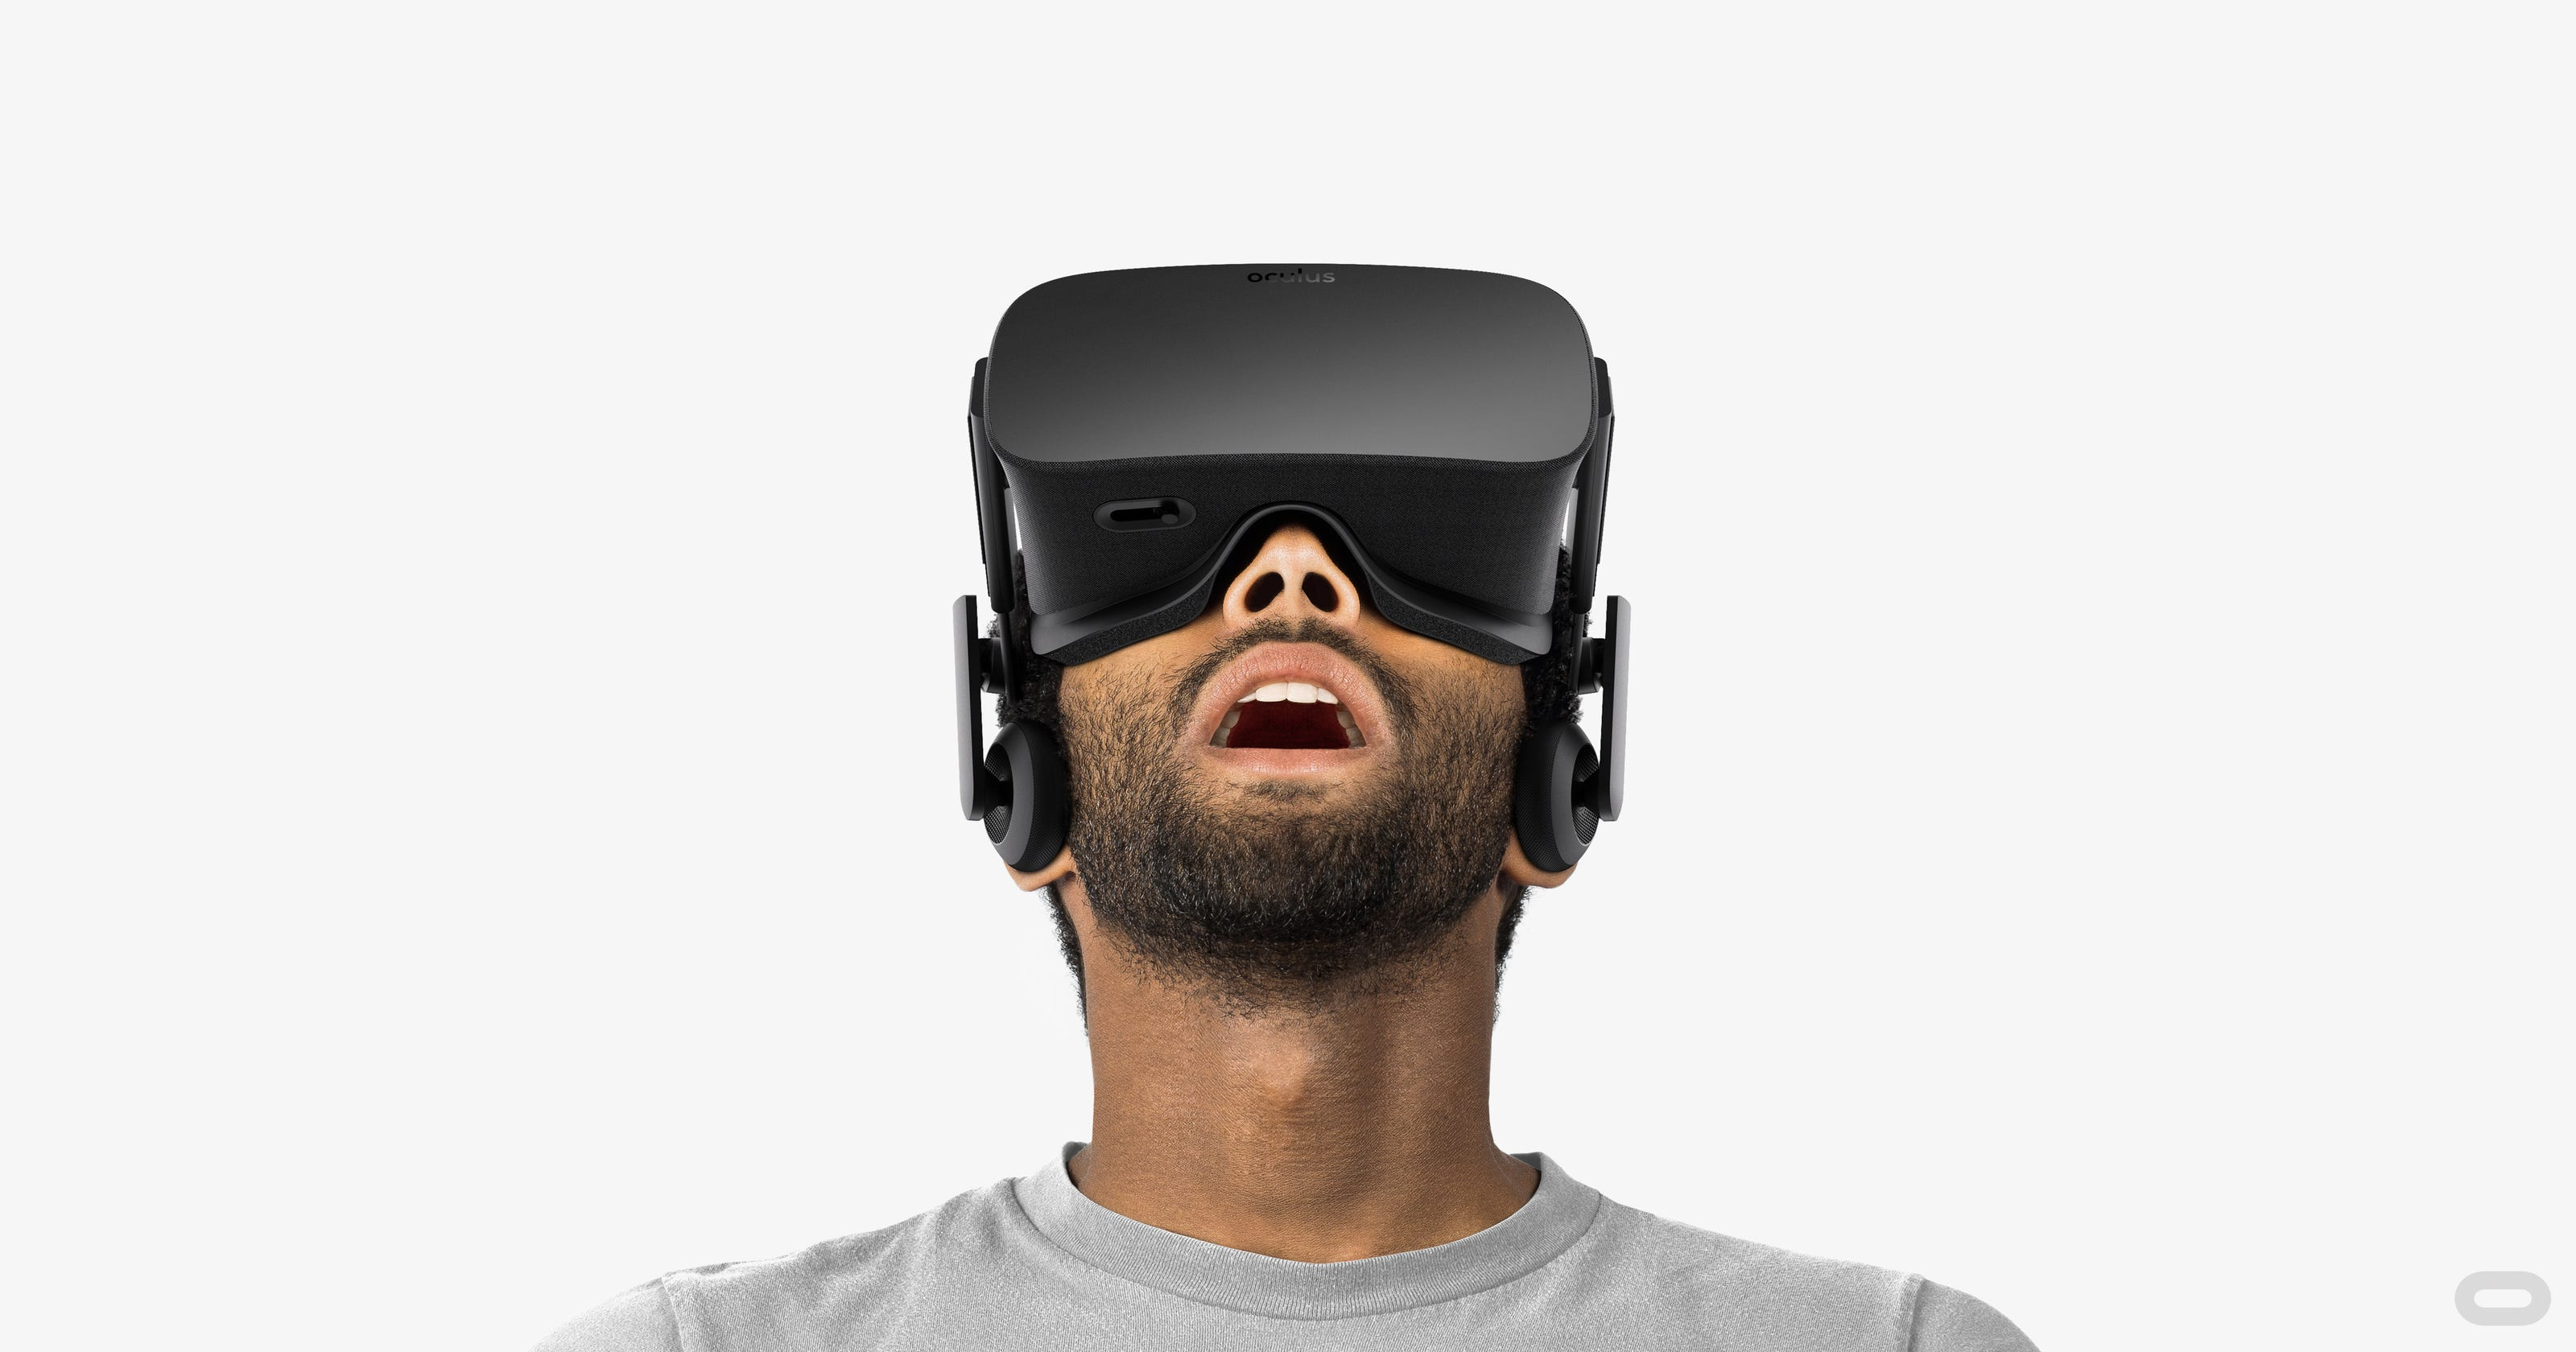 49f9473d66aa Oculus reveals price of Rift